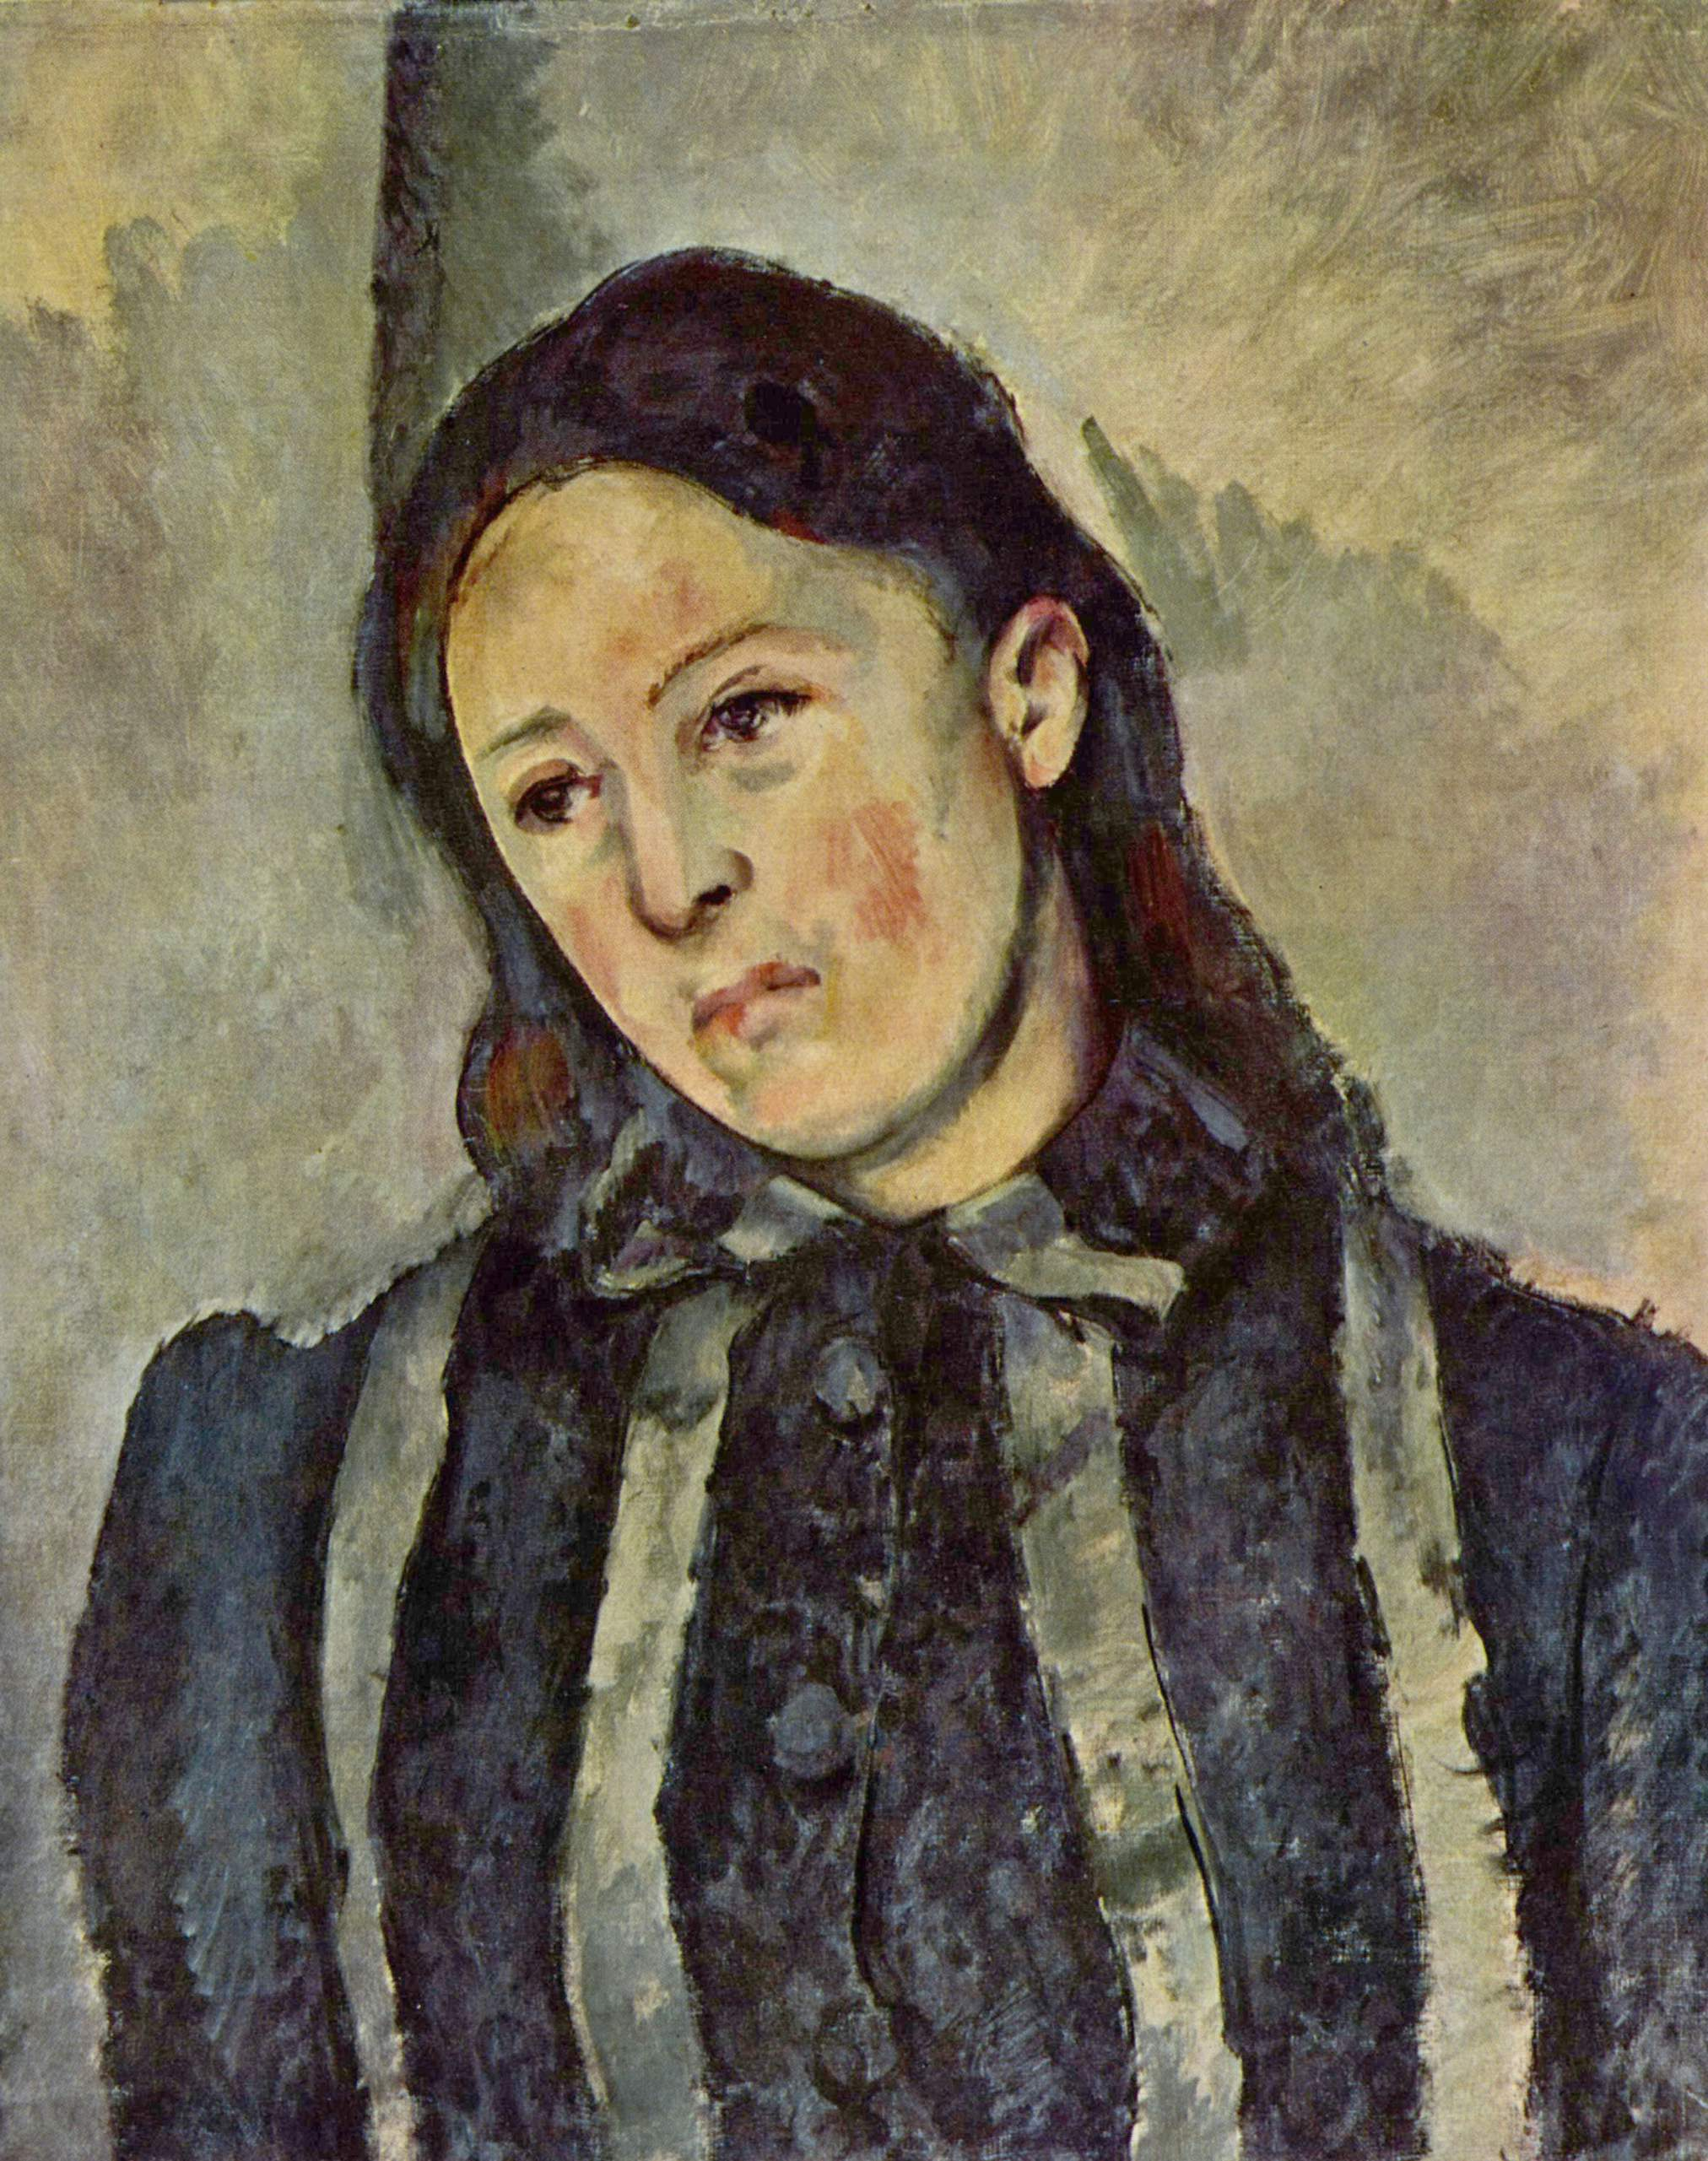 https://uploads6.wikiart.org/images/paul-cezanne/madame-cezanne-with-unbound-hair.jpg